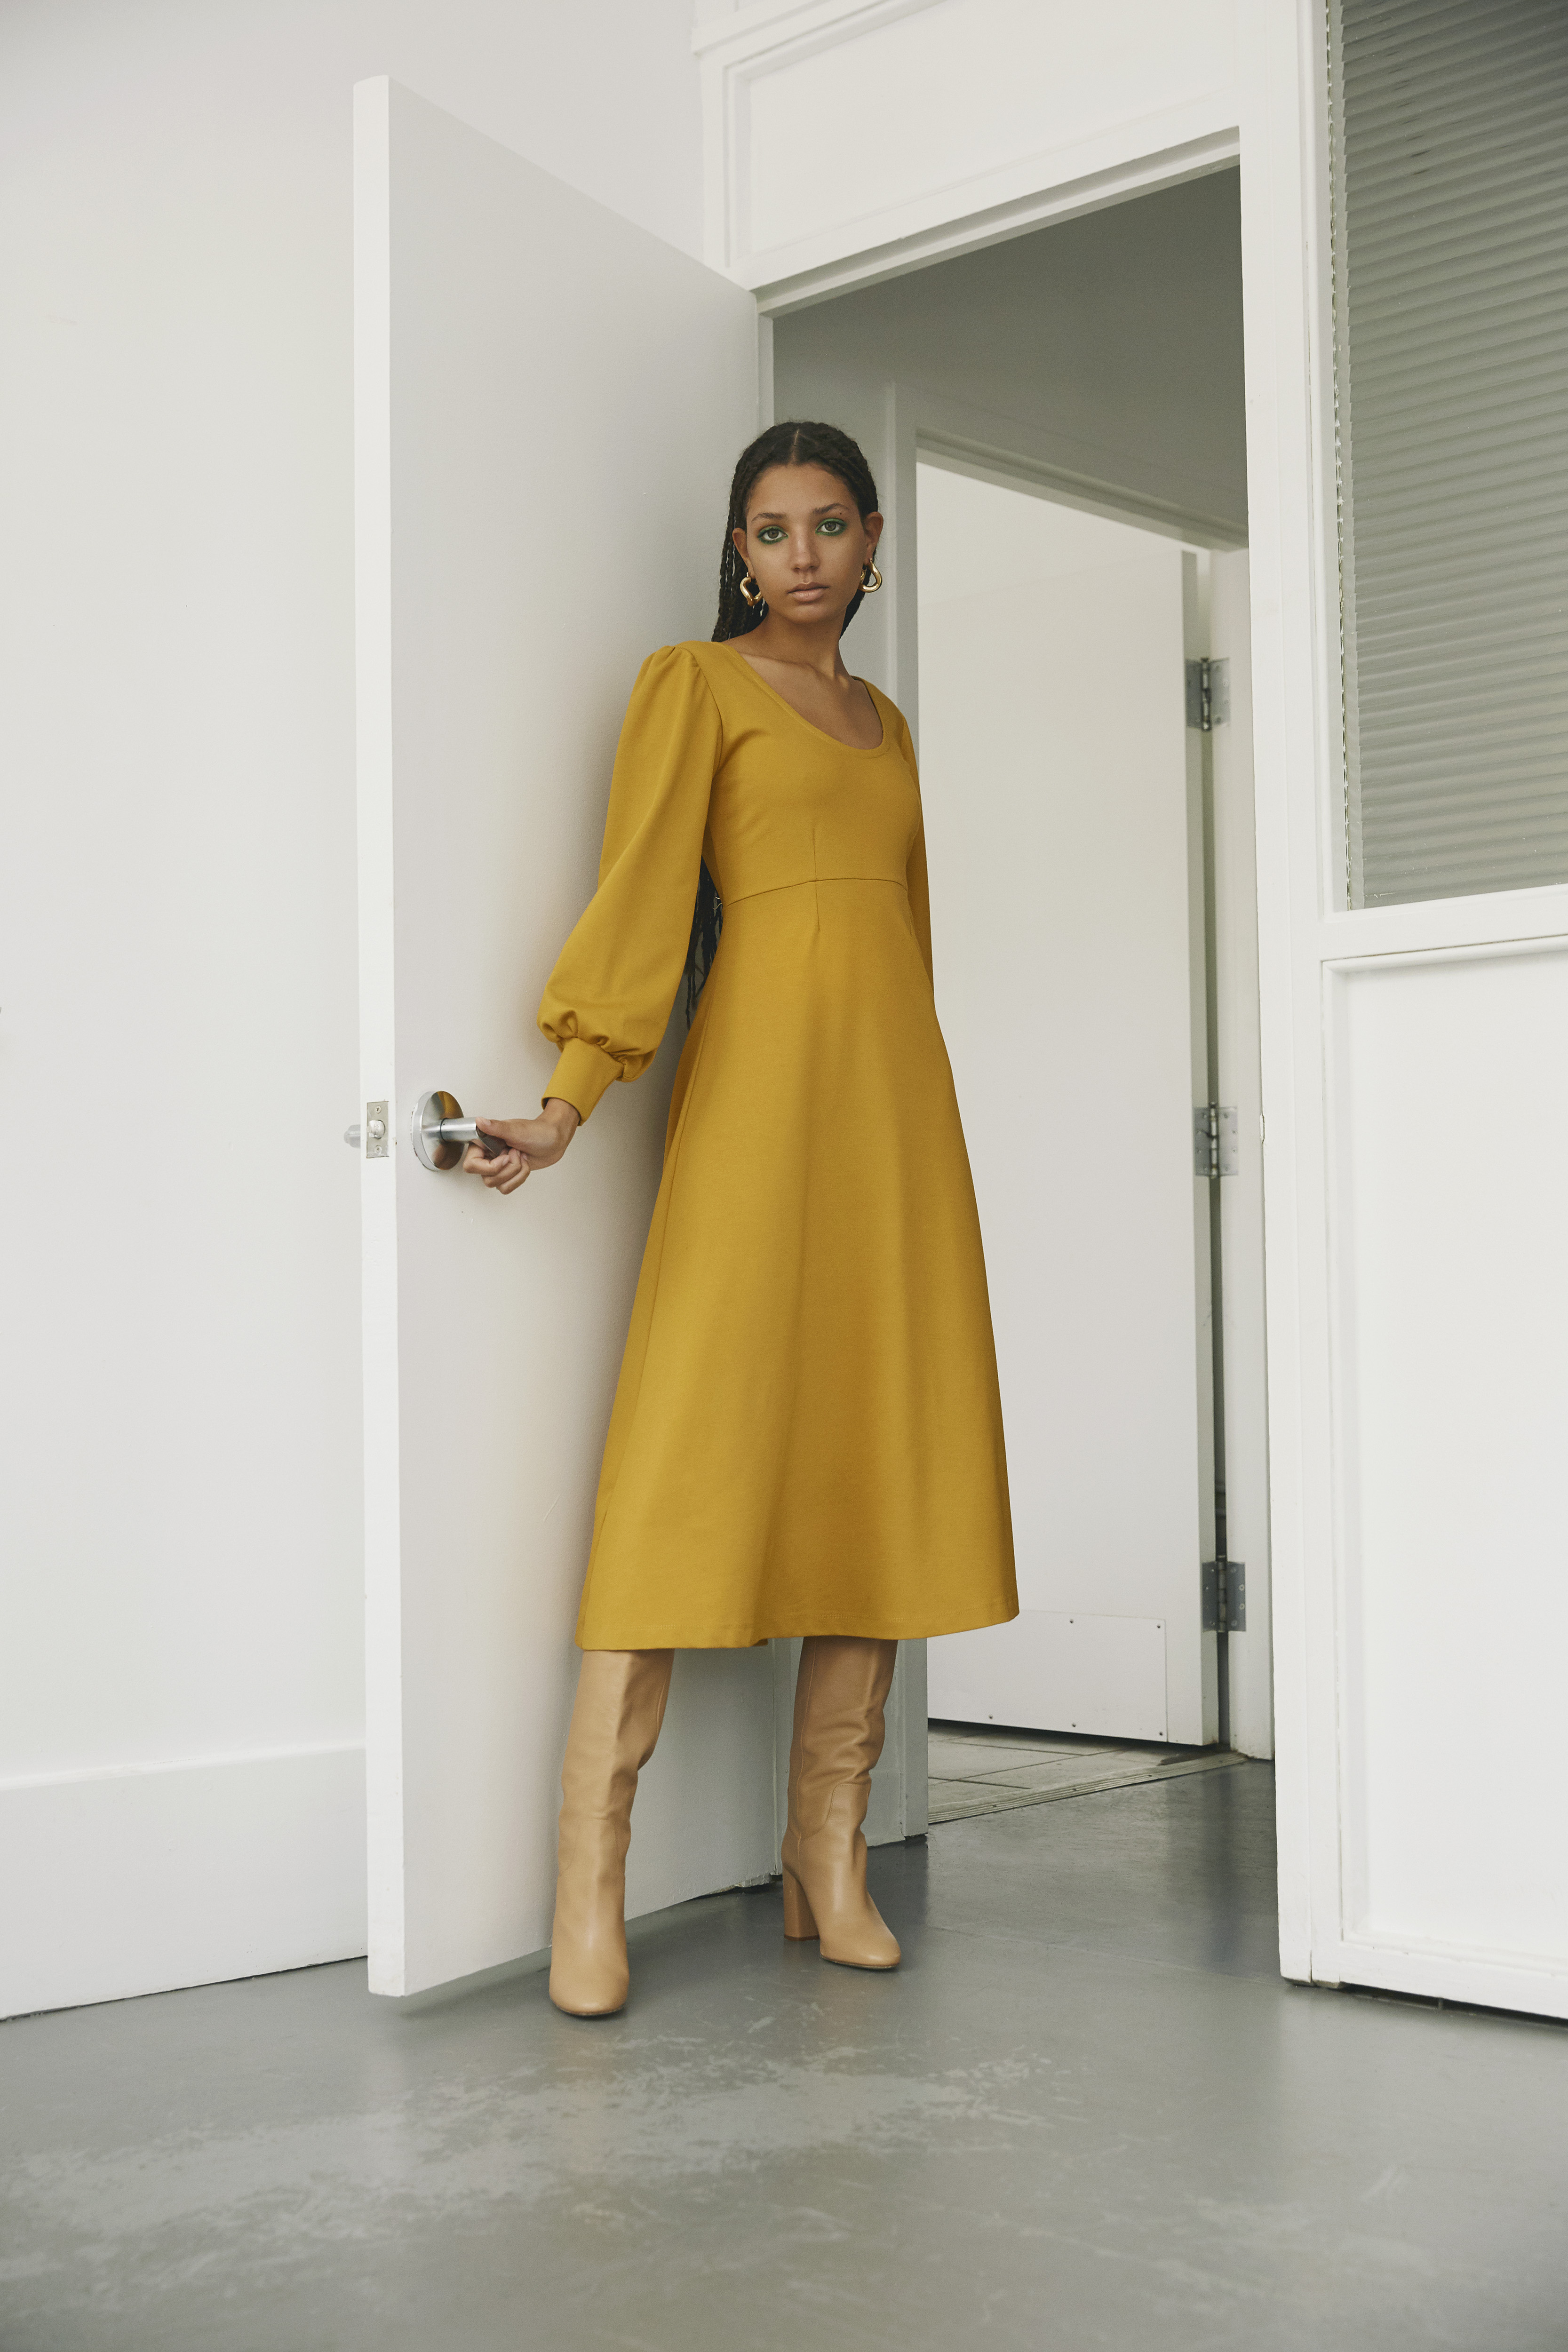 A model wears a calf-length mustard dress with balloon sleeves